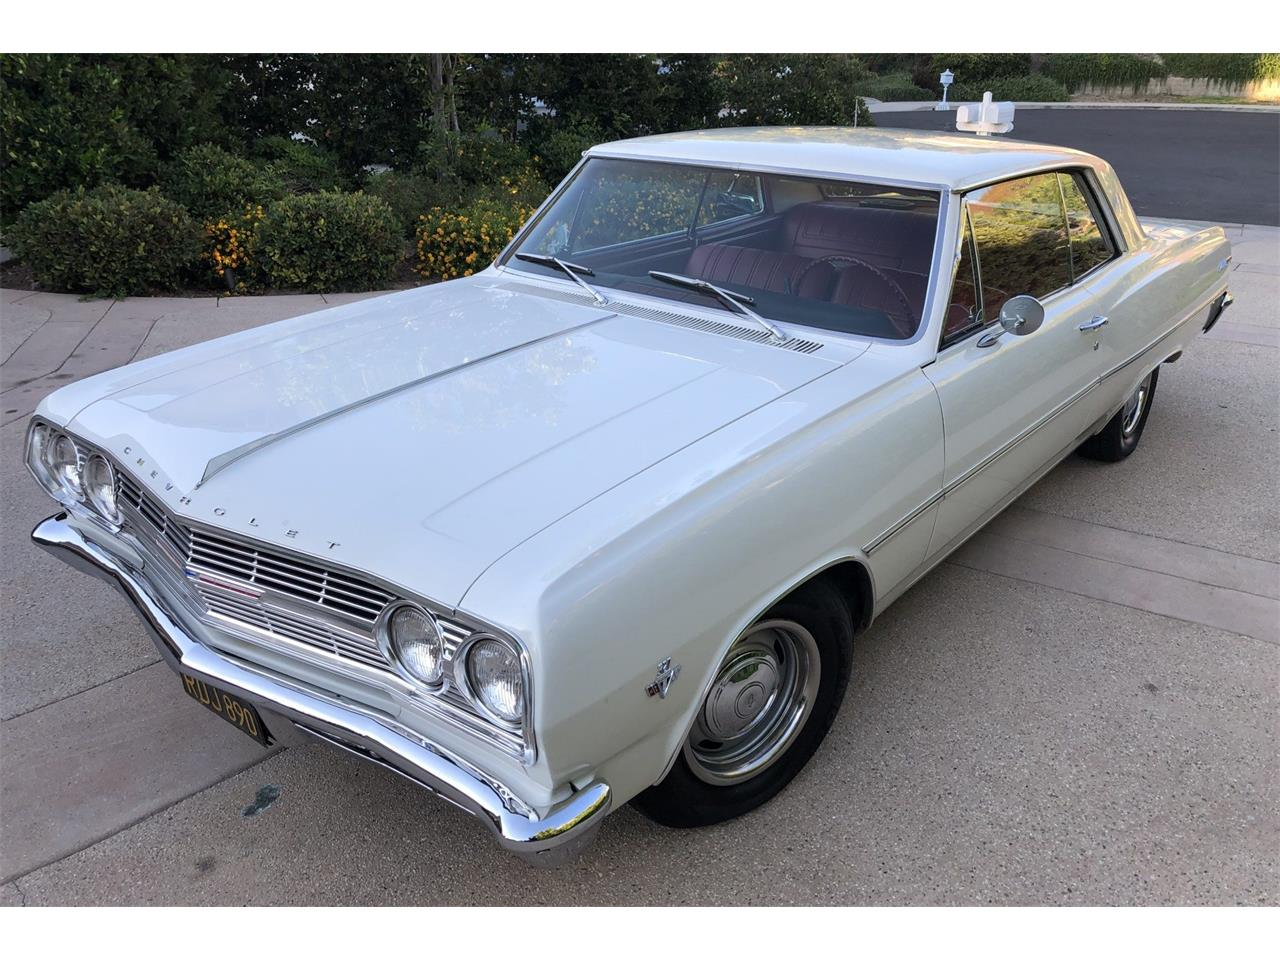 1965 Chevrolet Chevelle Malibu (CC-1248576) for sale in Thousand Oaks, California